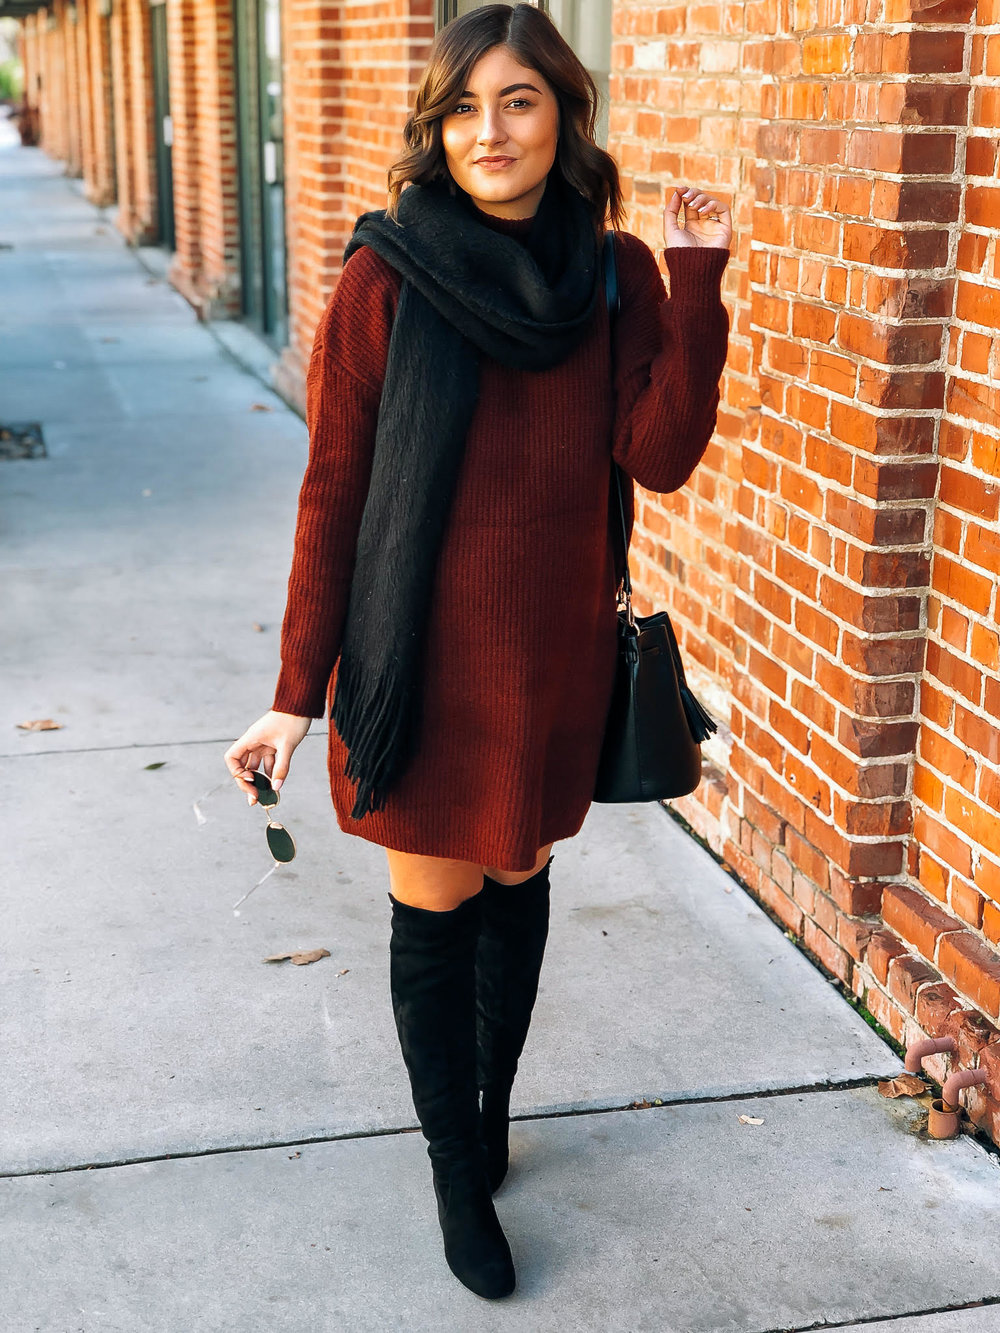 Hi, I'm Sydney! - I am a 26 year old SoCal native, currently living in the San Francisco Bay Area. I have a full time office job working in HR for a large tech company, but started my blog, bitesiphairflip.com, as a creative outlet and a way to apply my love for fashion + food to something constructive and fun. I'm married to a wonderful man and we're expecting our first child in February--Hello mommy blogger life! (@sydney_burden)